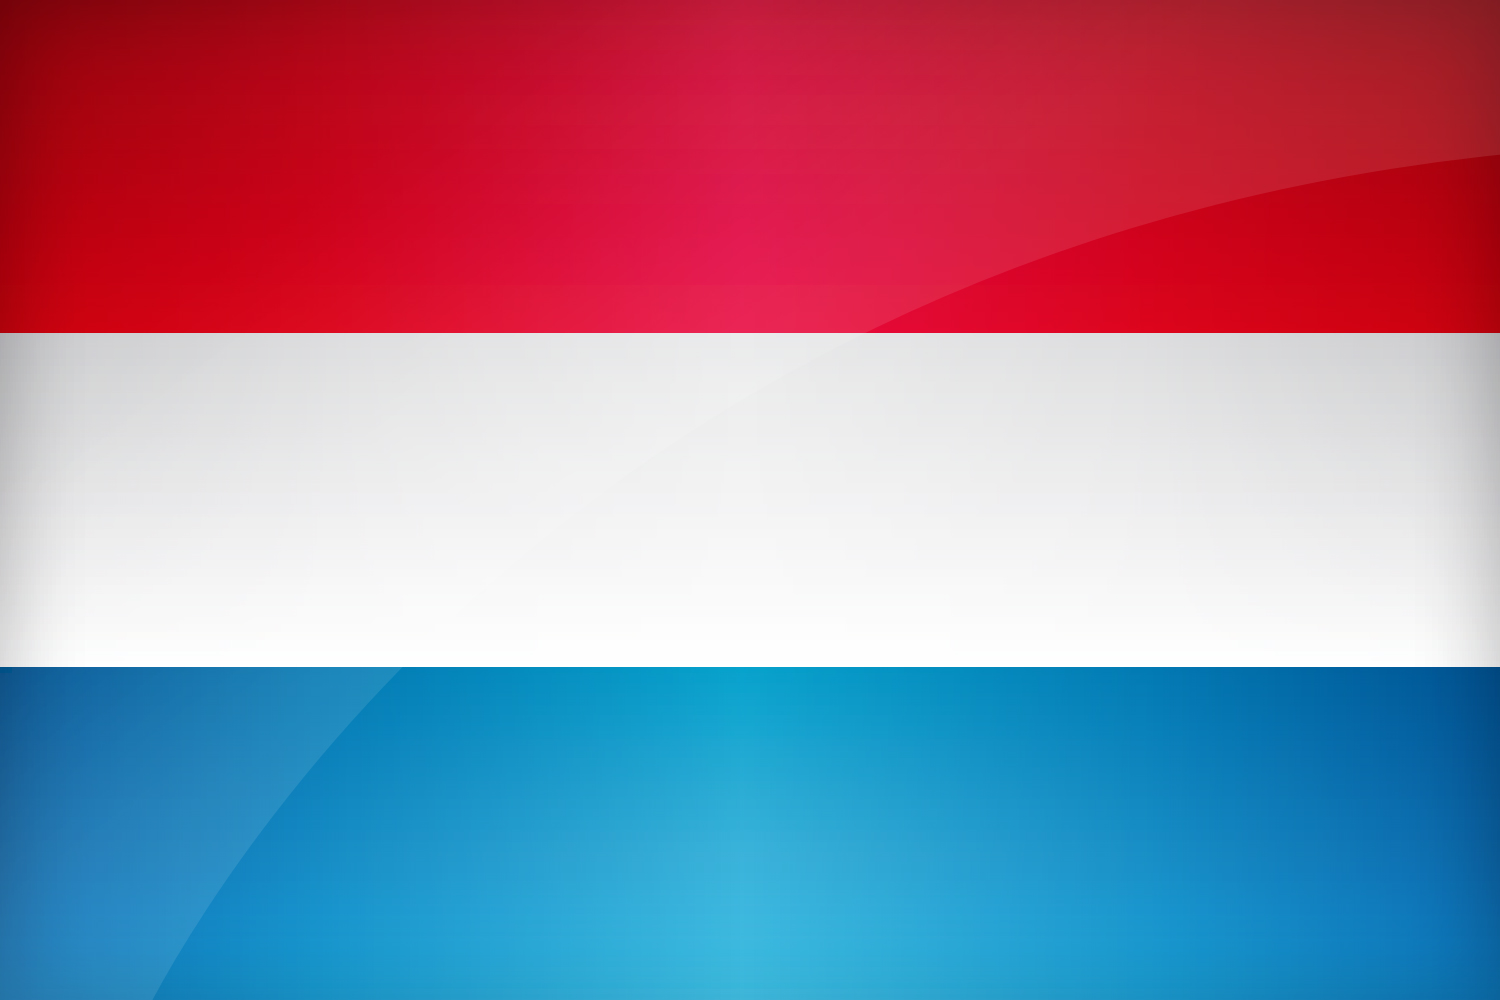 Luxembourg Flag and Description